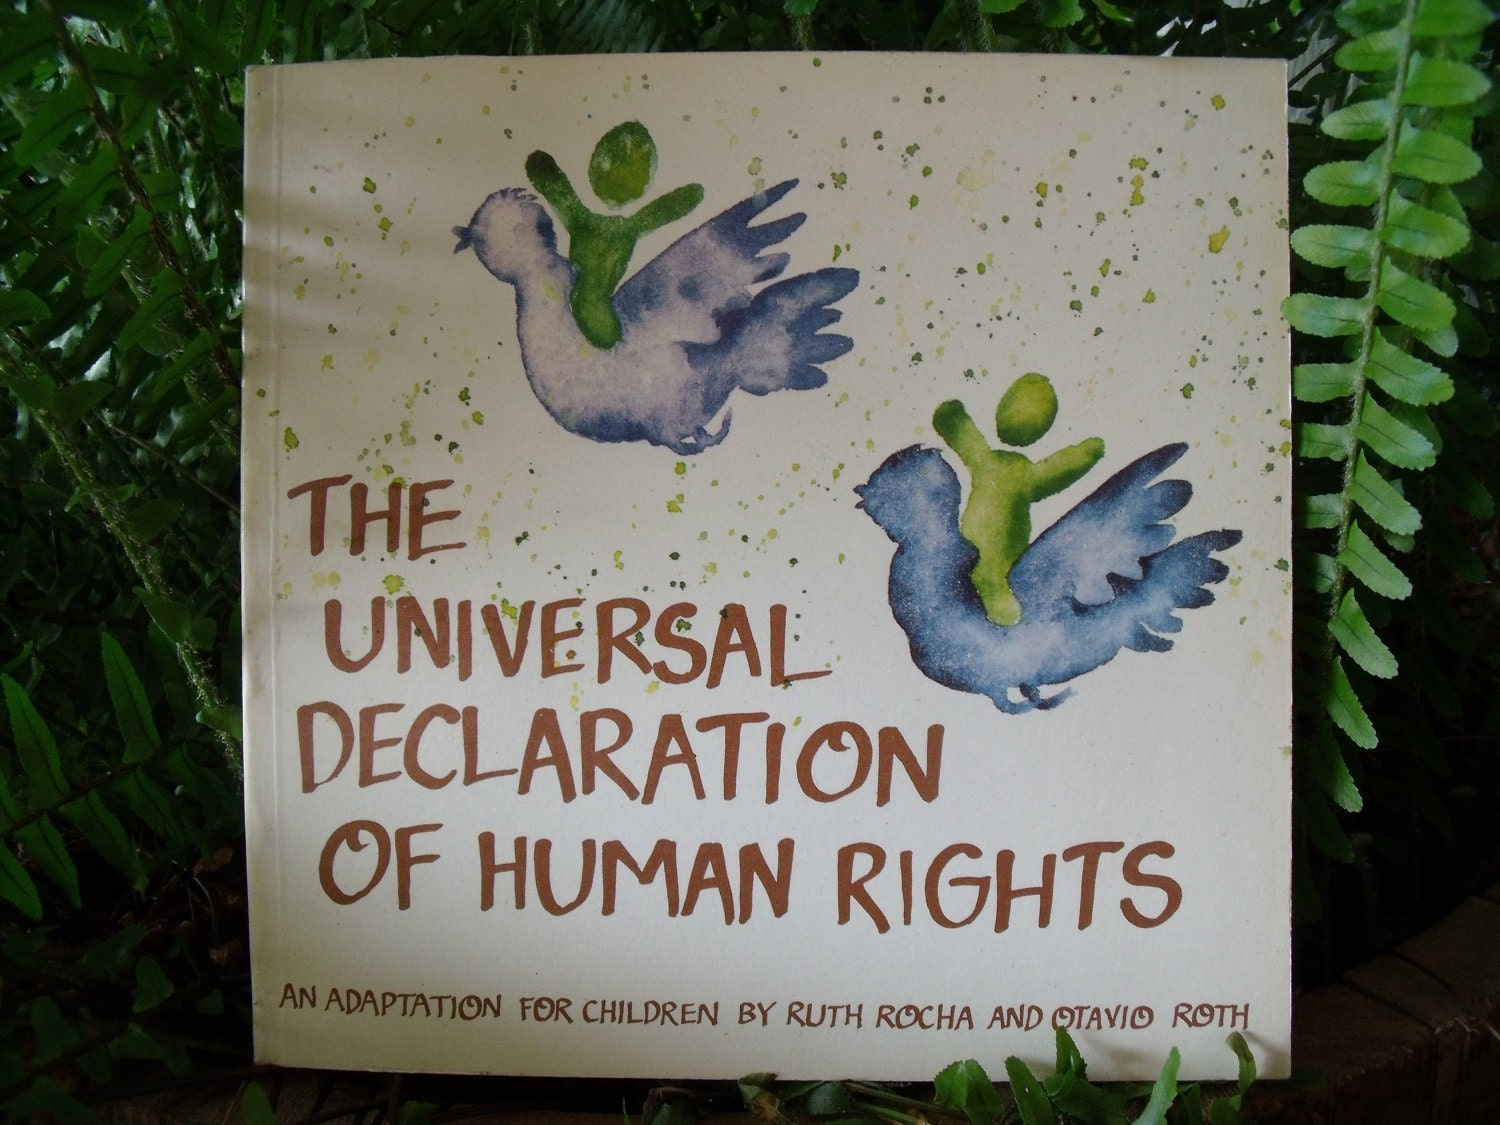 american and universal human rights essay Human rights are the basic rights and freedoms to which all humans are  considered entitled: the  human rights documents such as the universal  declaration of human rights, the international covenant on  posted: june  2004   tell us  about your work.